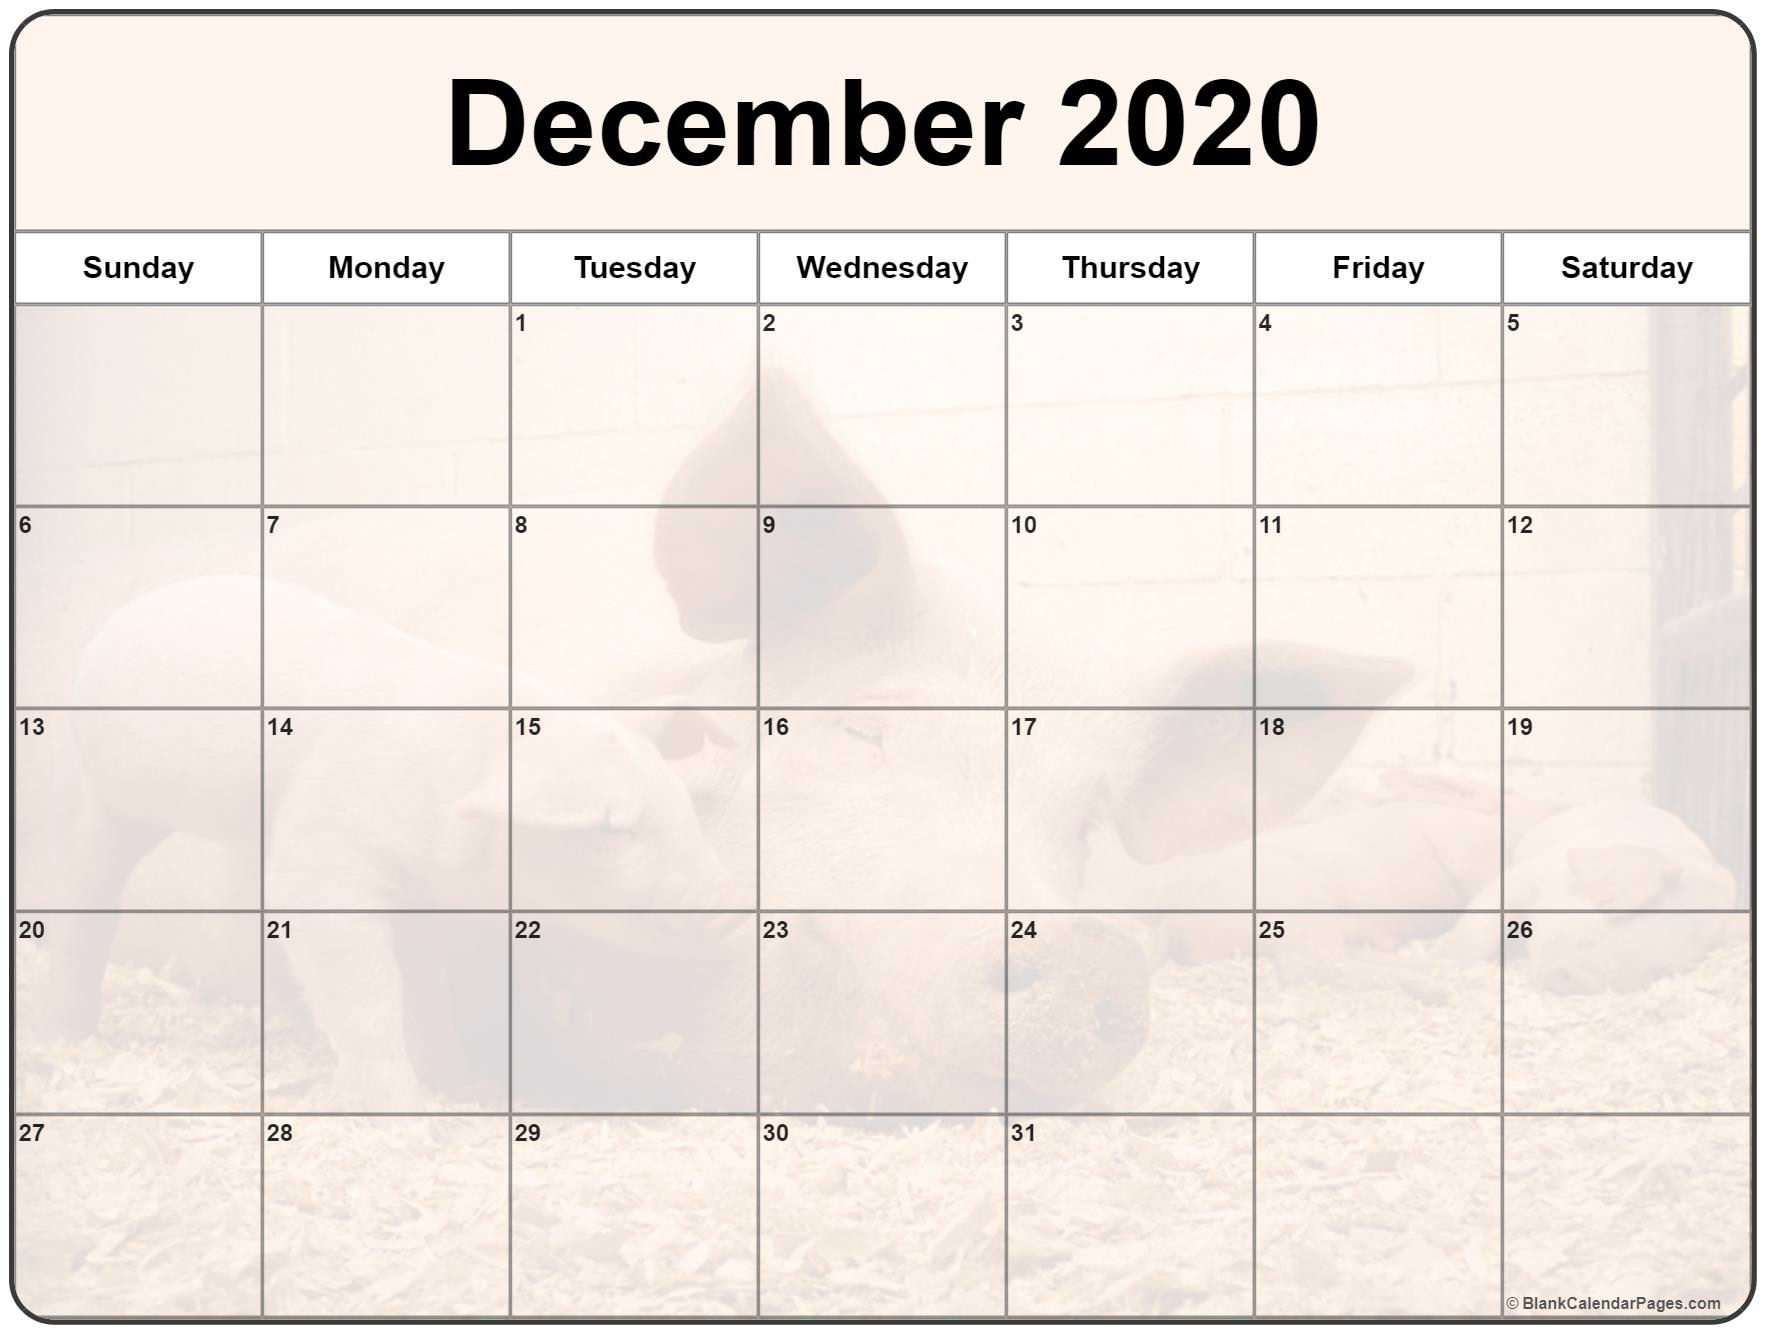 Free Cute Printable Calendars 2020 Collection Of December 2020 Photo Calendars with Image